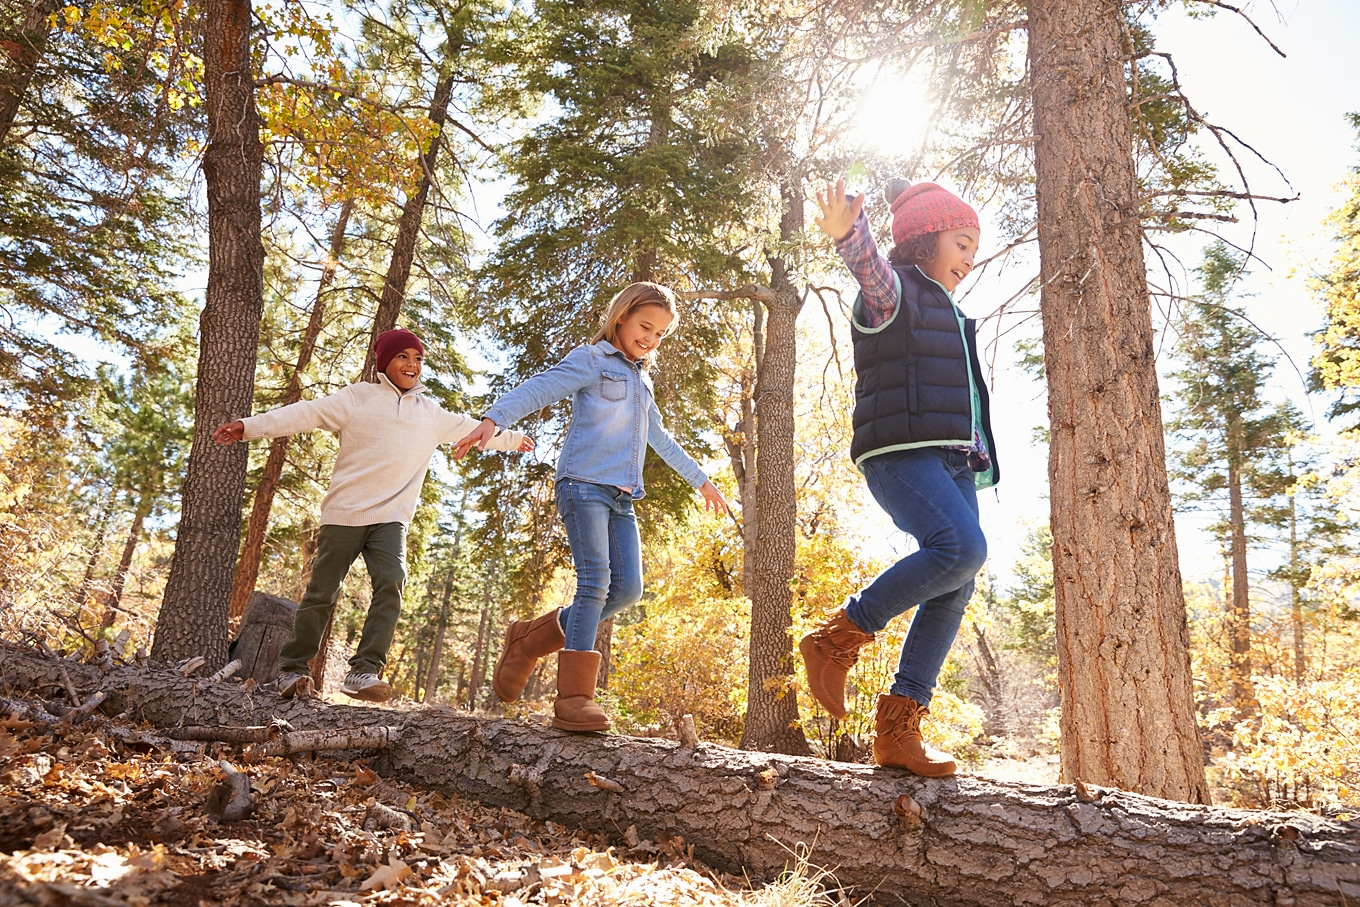 Children Playing in the Woods During Fall